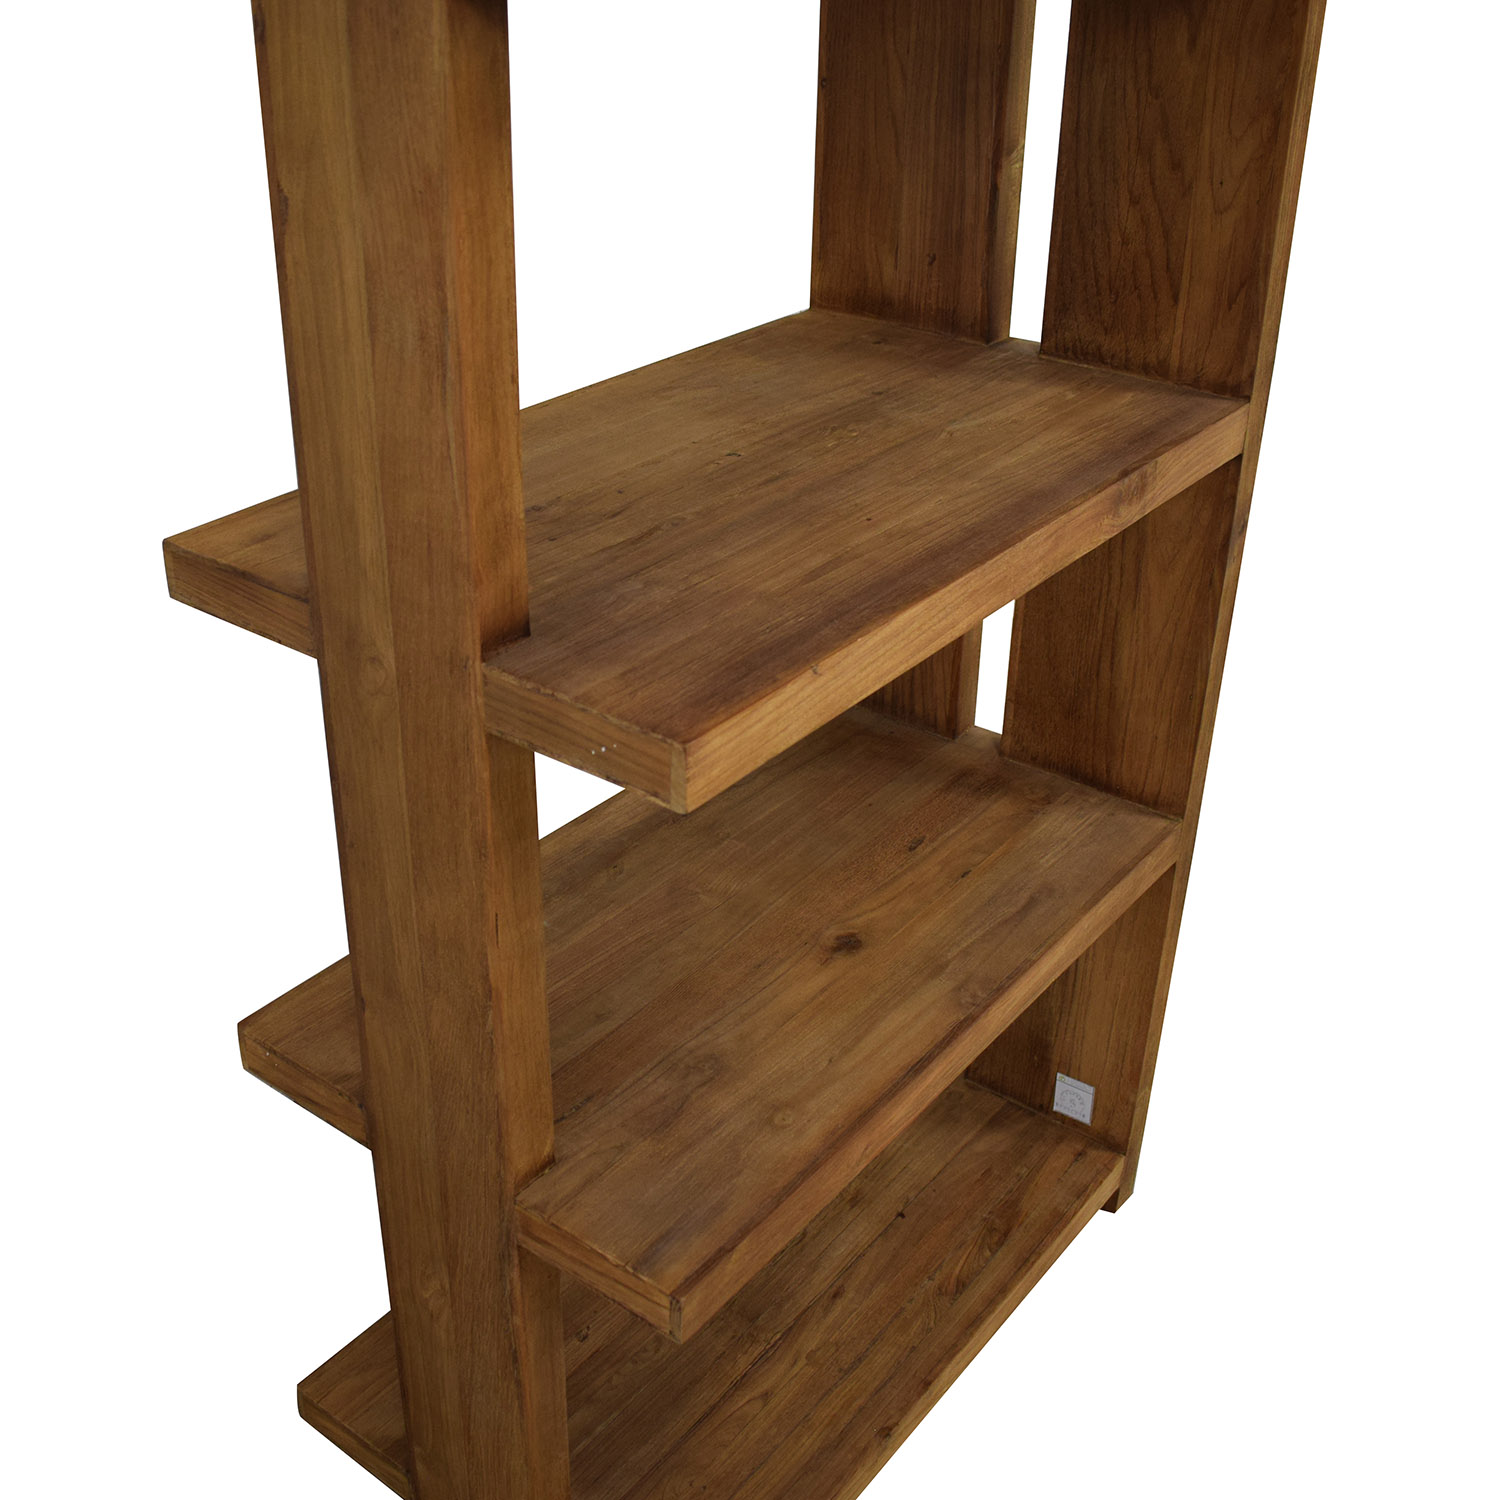 ABC Carpet & Home ABC Carpet & Home Harmony Etagere Bookcases on sale